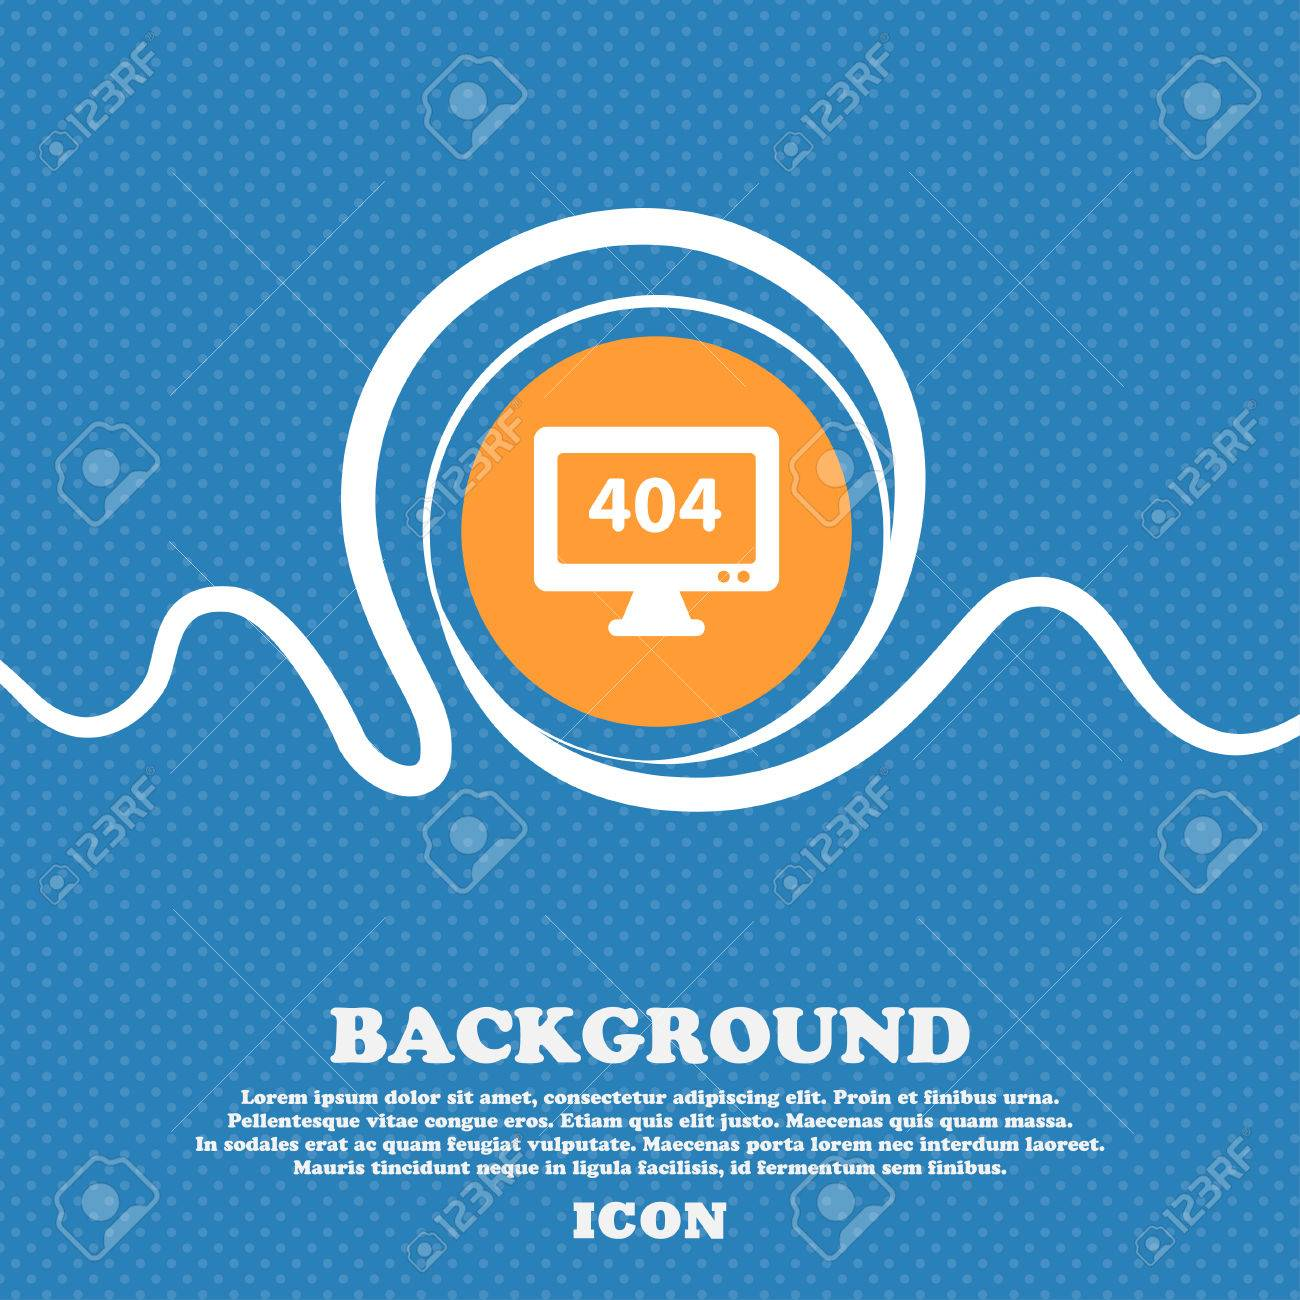 Background image 404 not found - 404 Not Found Error Icon Sign Blue And White Abstract Background Flecked With Space For